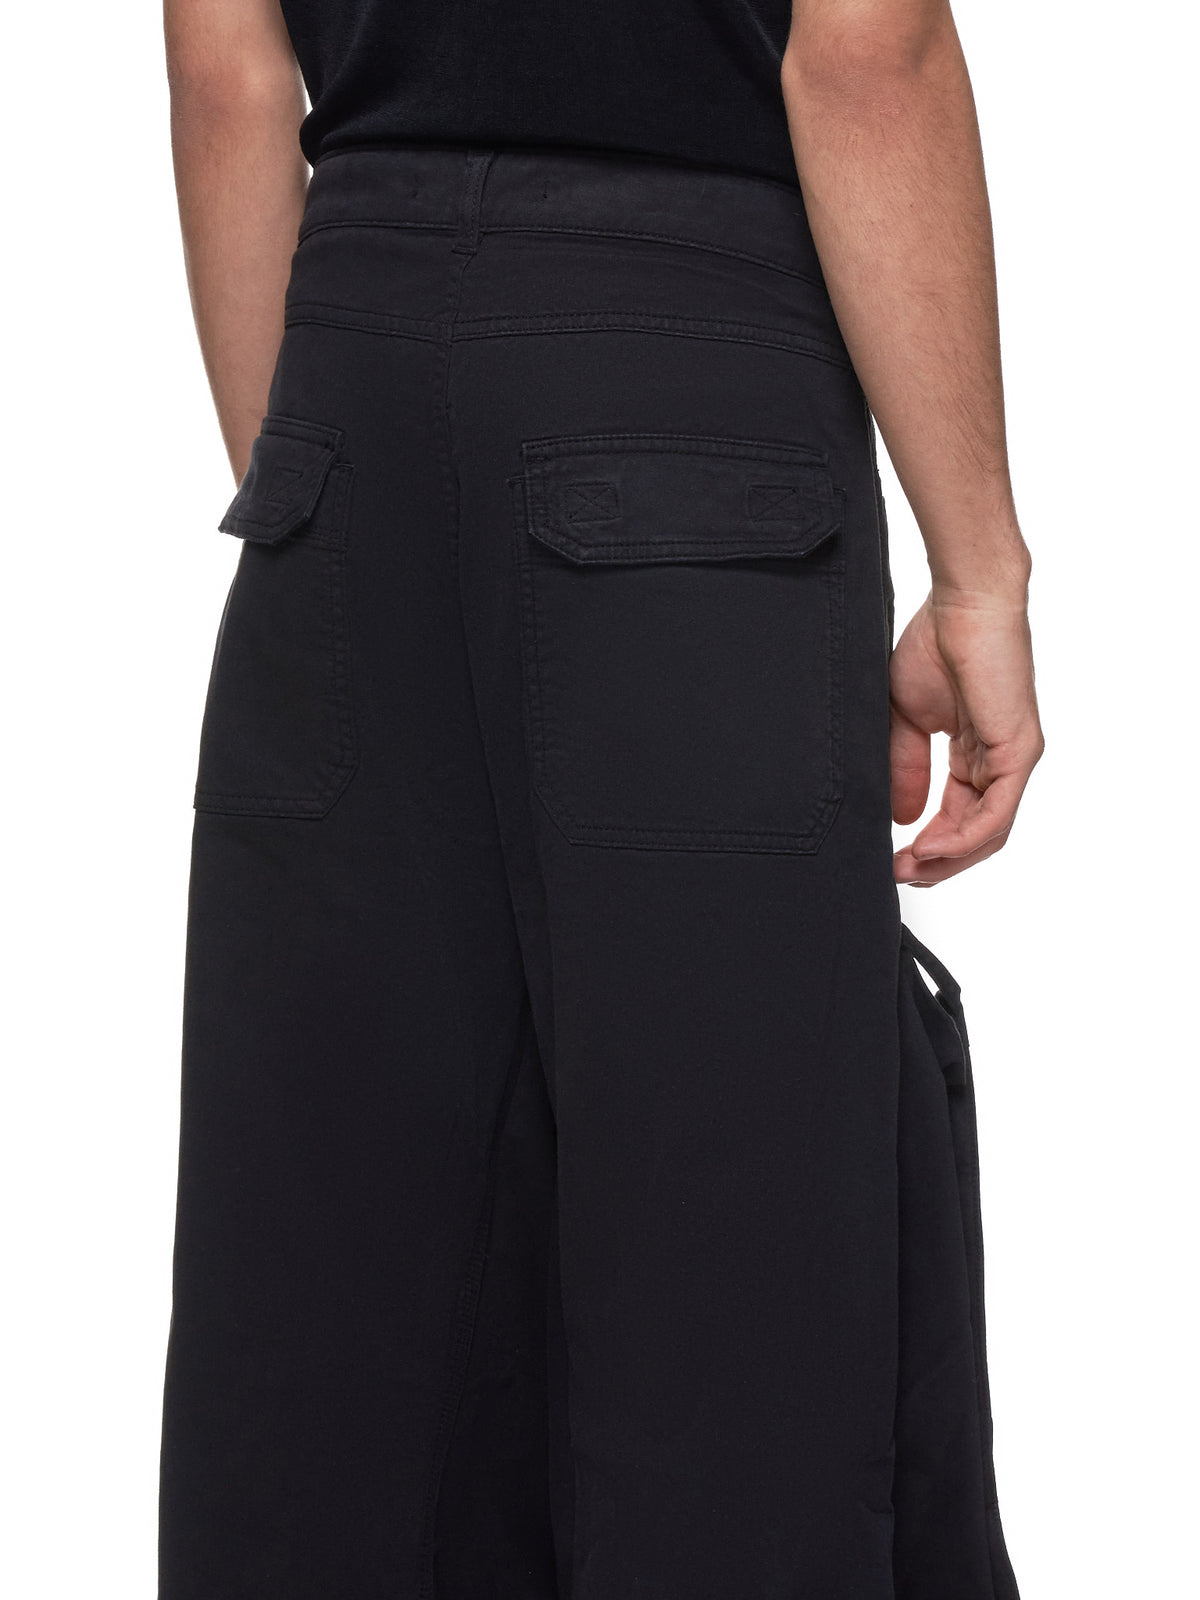 Pop-Up Leg Trousers (PANT36-S16-F164-BLACK)